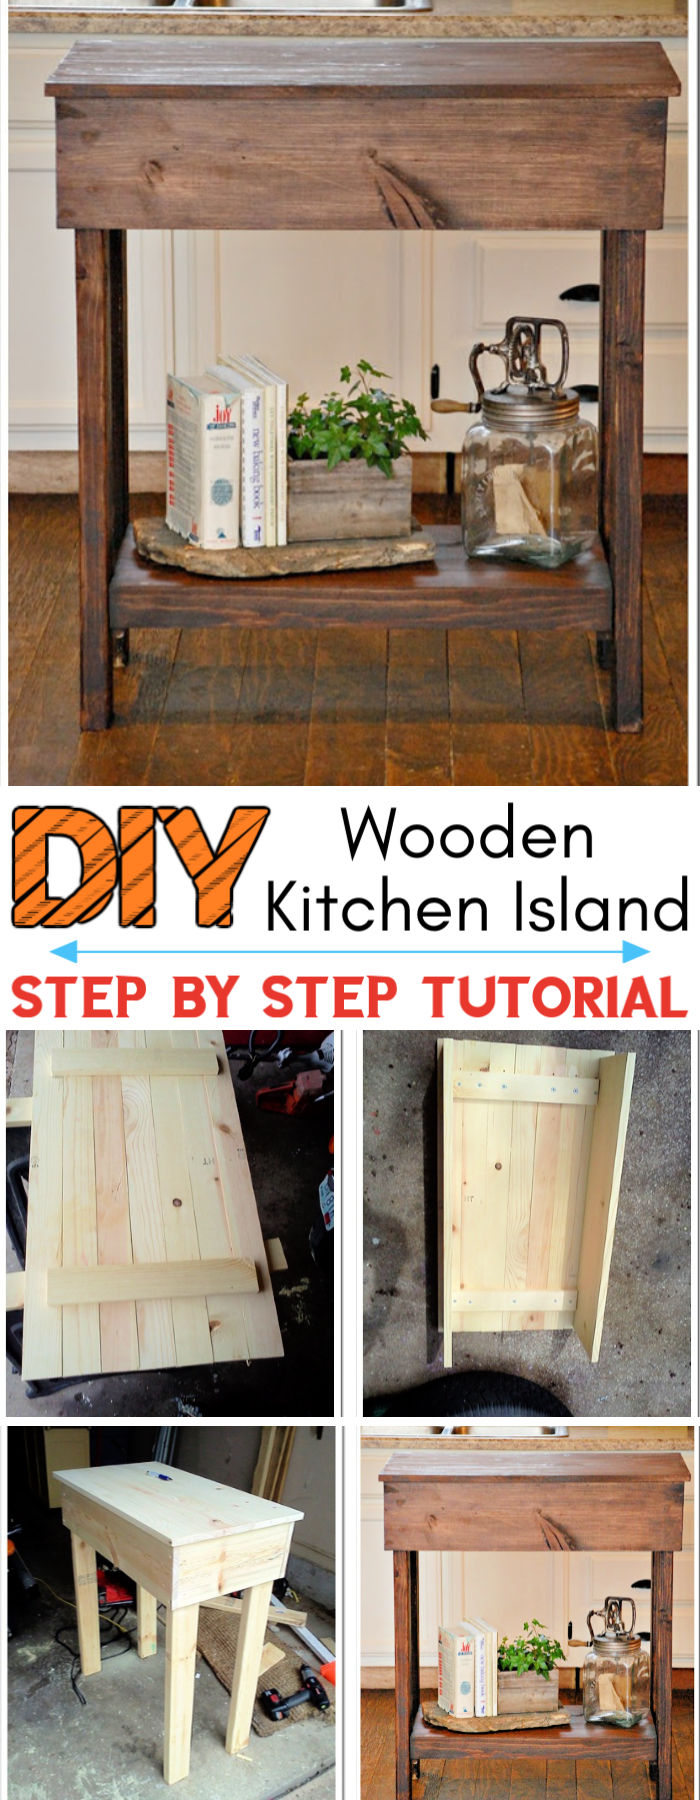 Handmade Wooden Kitchen Island